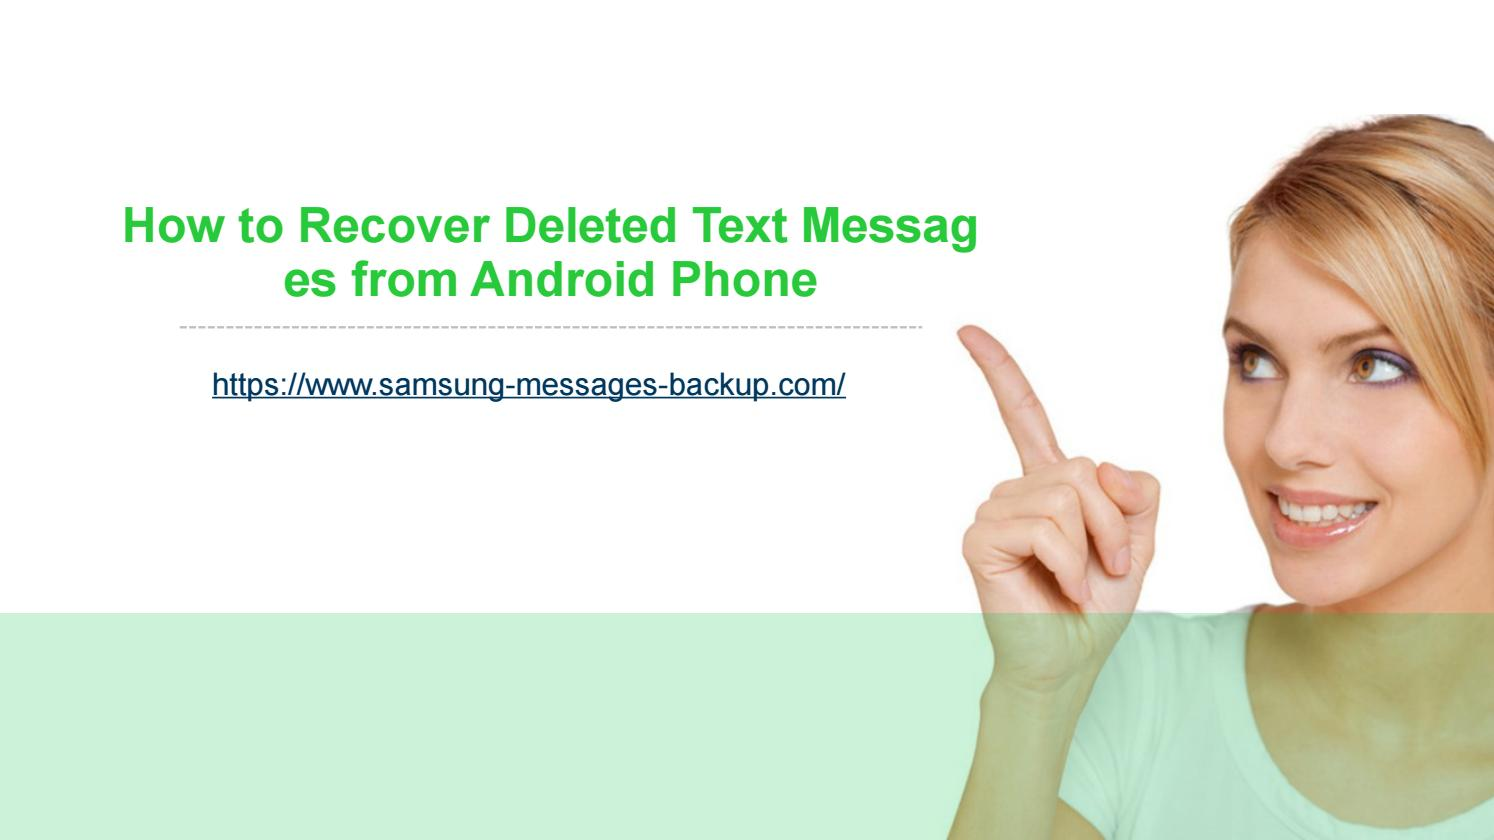 How to Recover Deleted Text Messages from Android Phone by